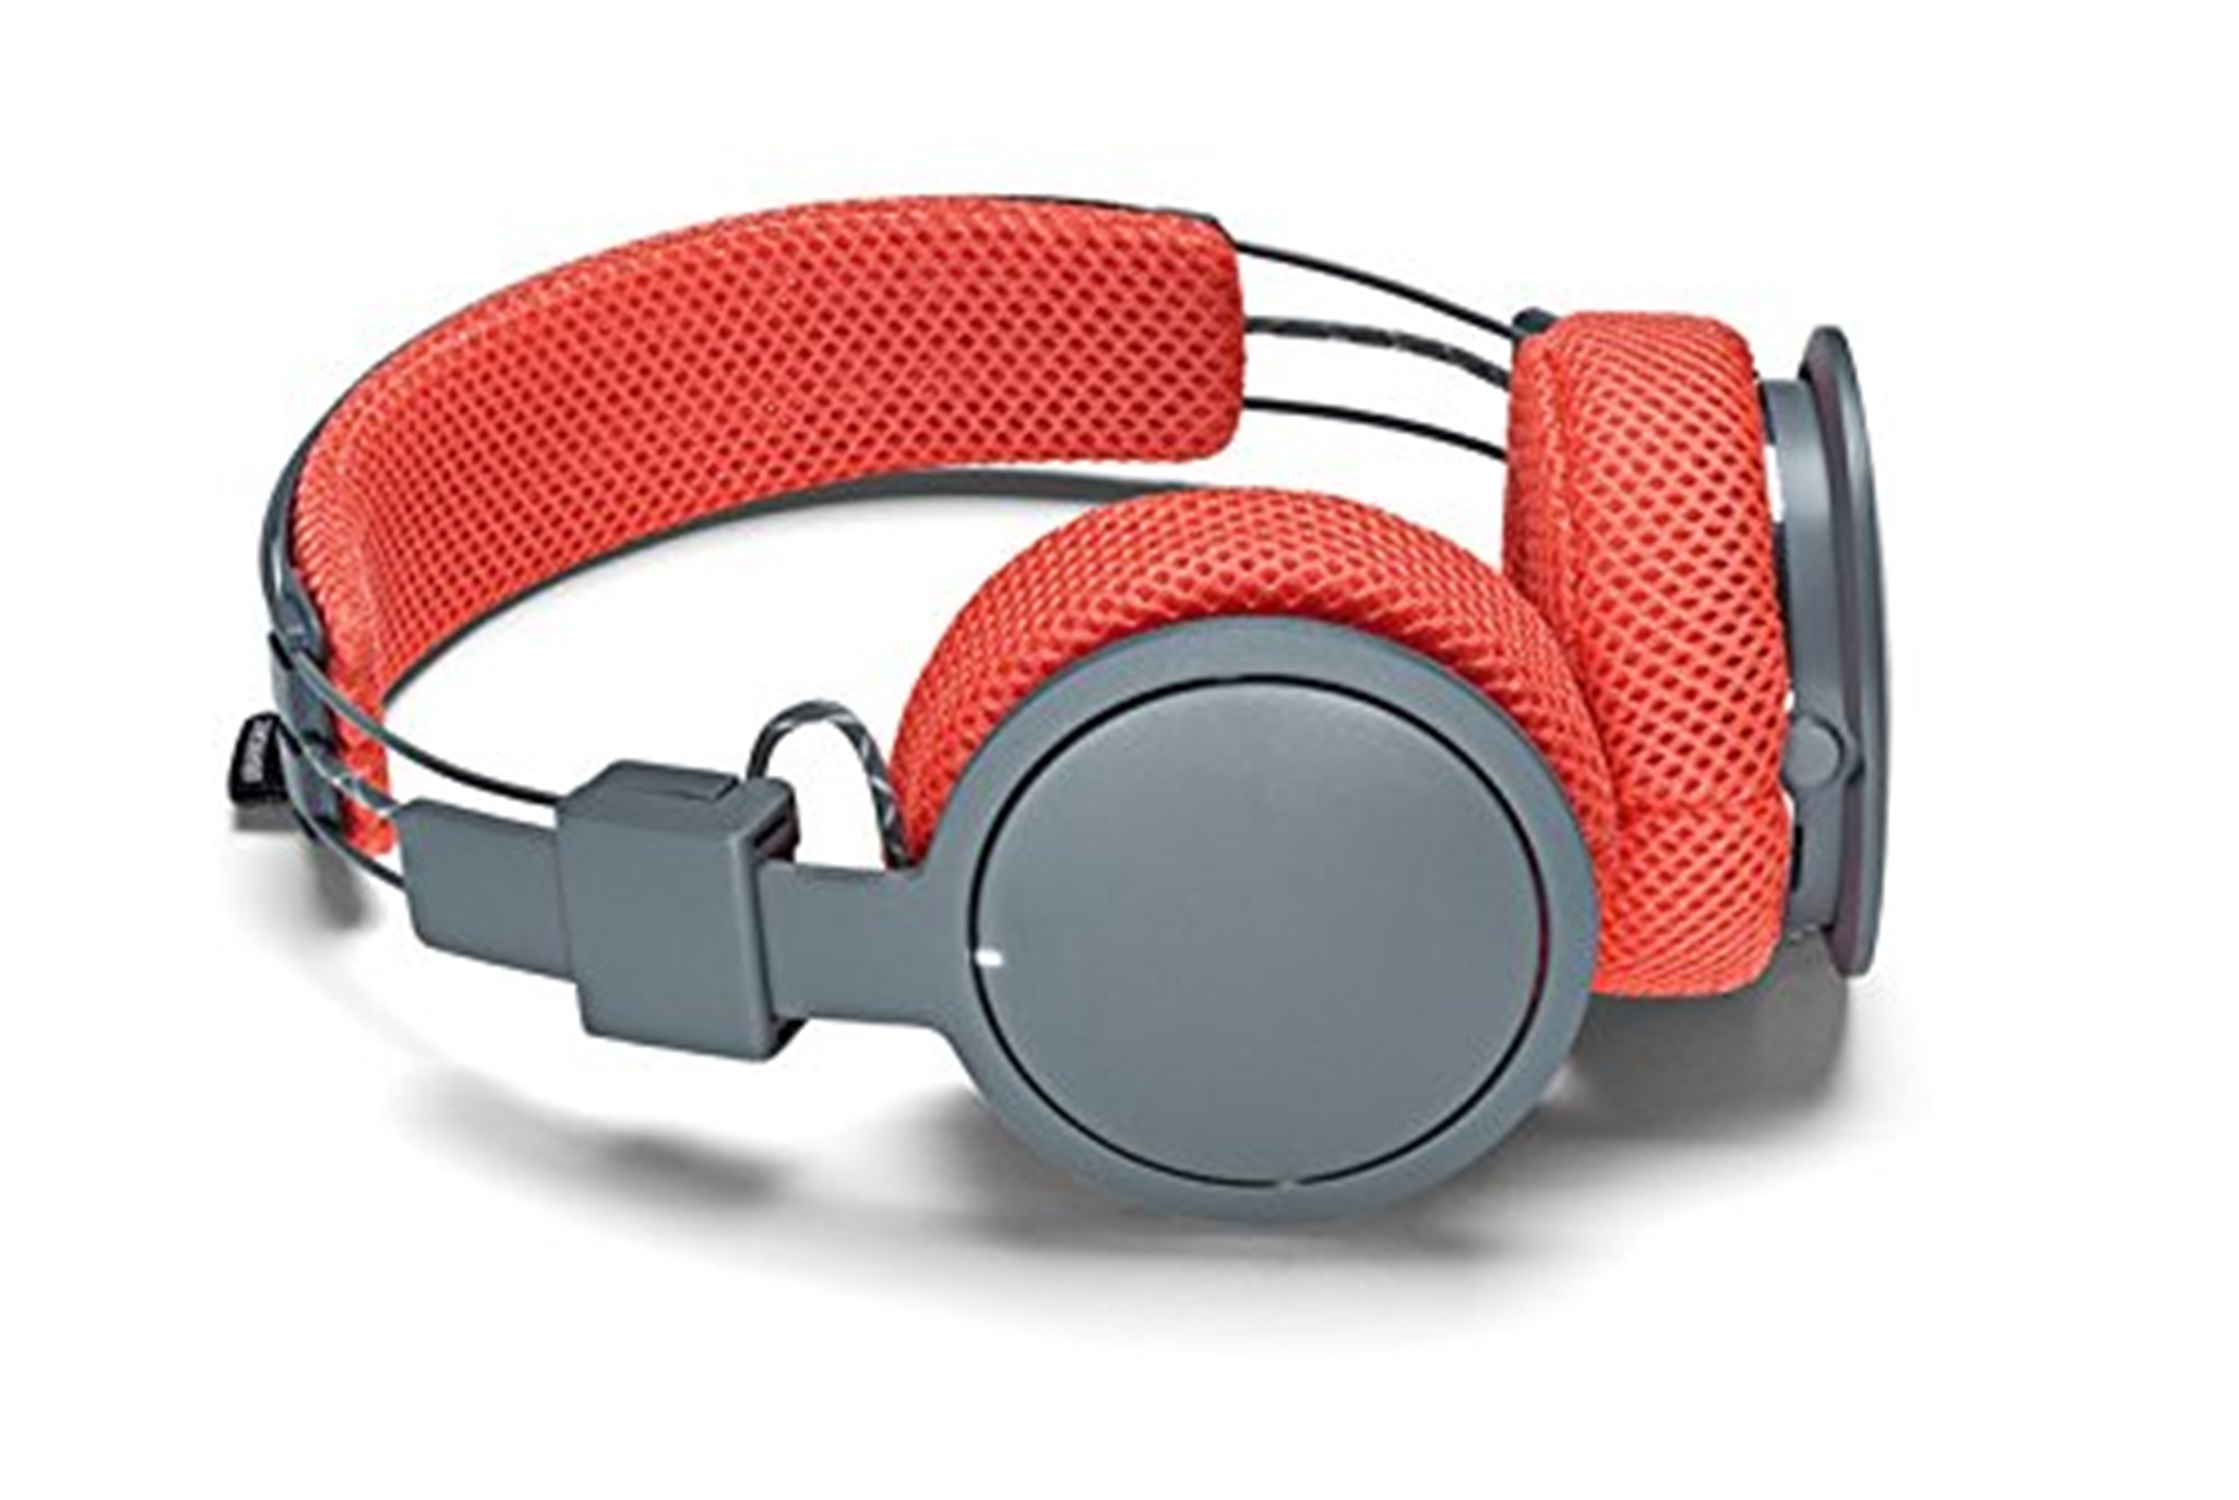 URBANEARS - ACCESSORI AUDIO - 7340055315852